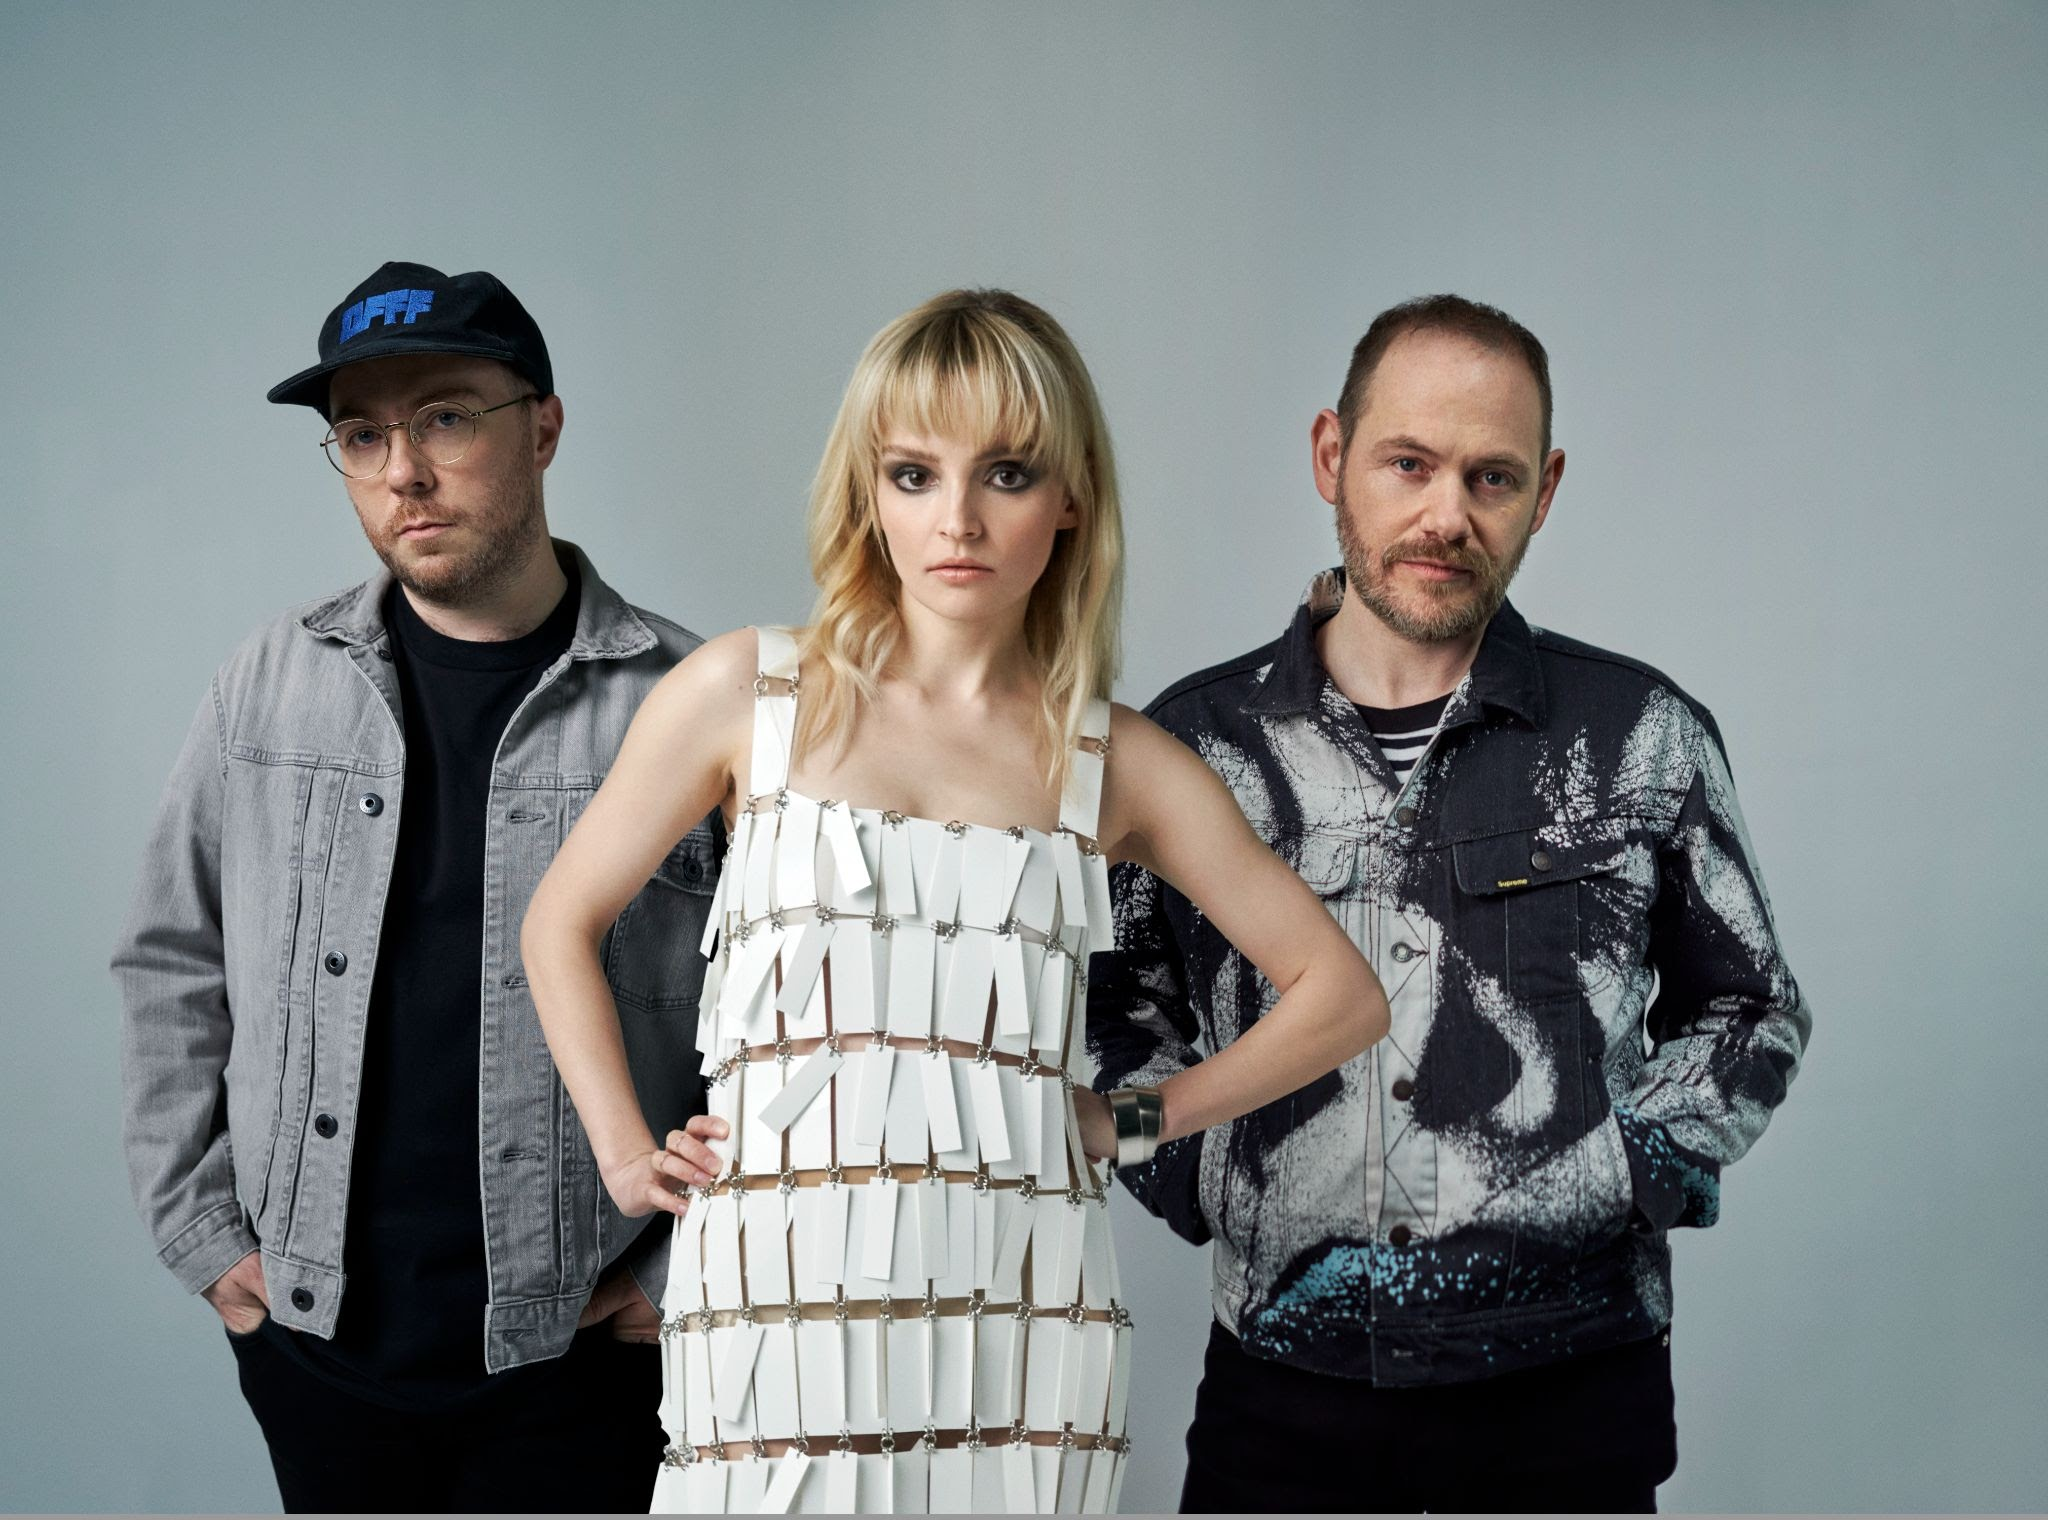 NEWS: CHVRCHES cover 'Cry Little Sister' from Lost Boys for new Netlfix film